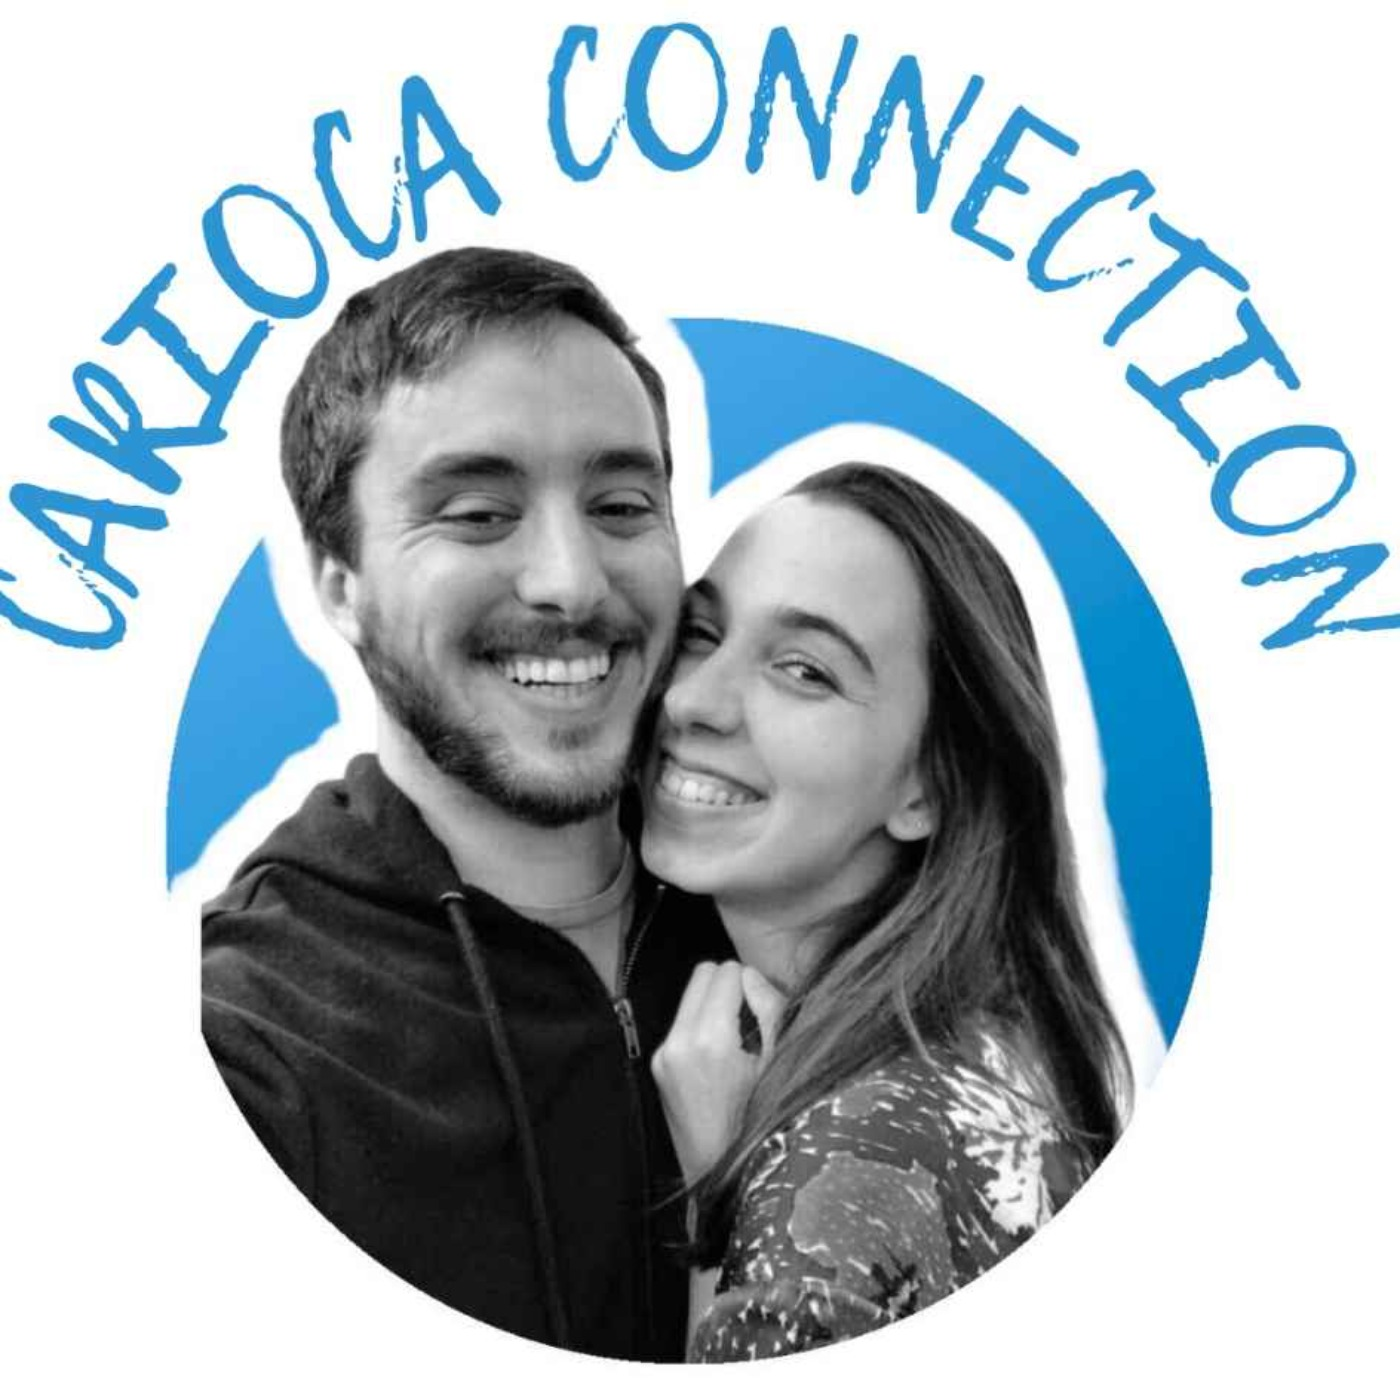 The Best Of: Welcome To Carioca Connection